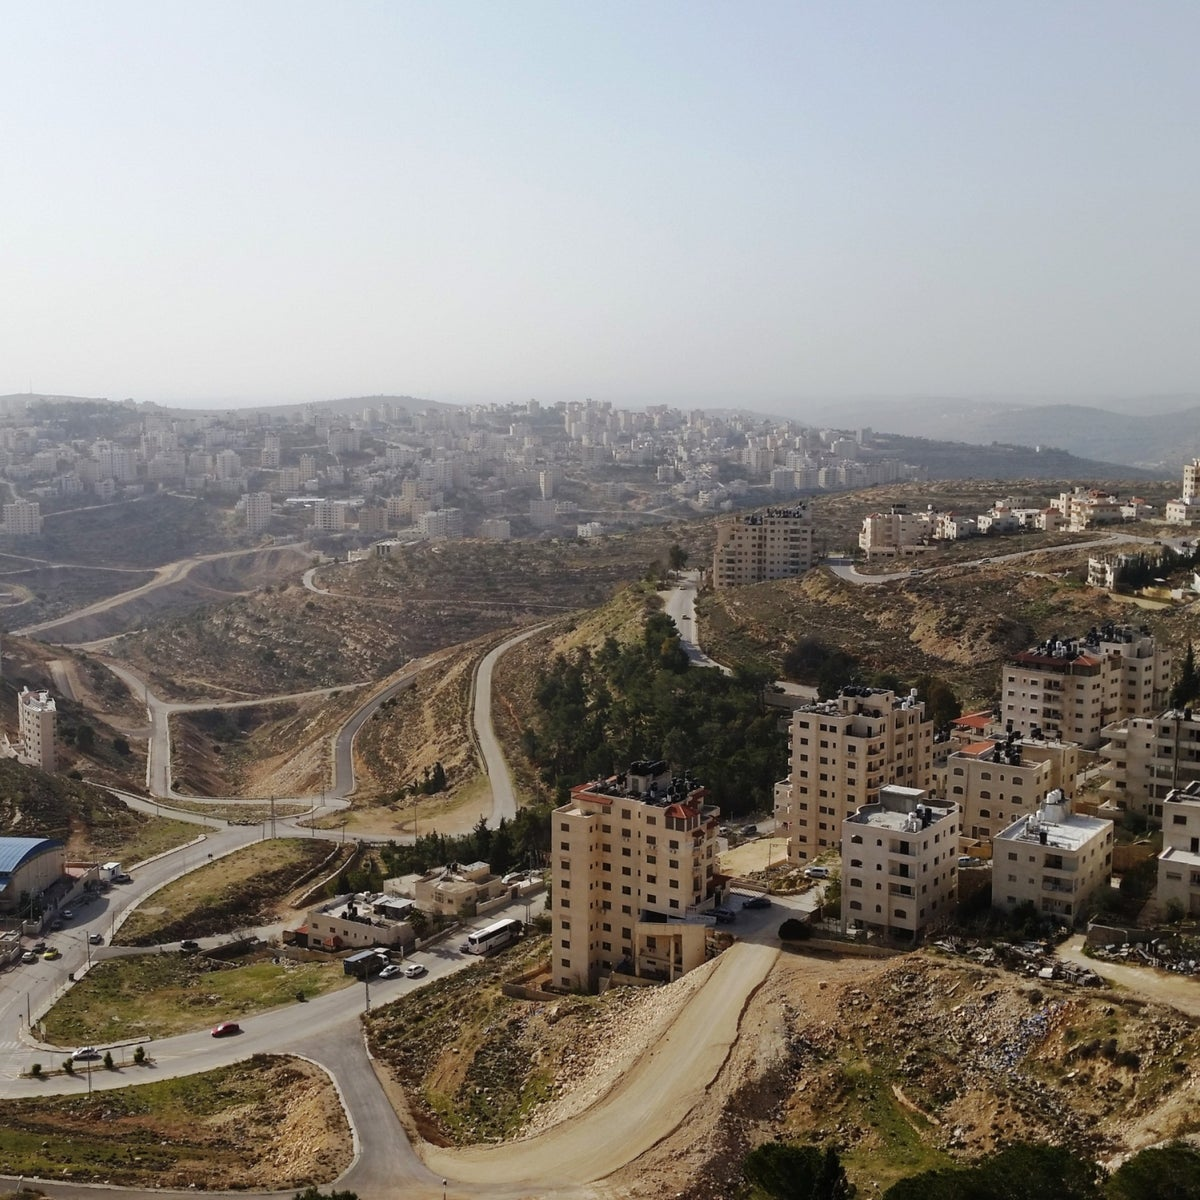 An aerial image of Ramallah neighborhoods. 'Even though Ramallah has some specific characteristics, one has to keep in mind that it is under the same exact military occupation.'